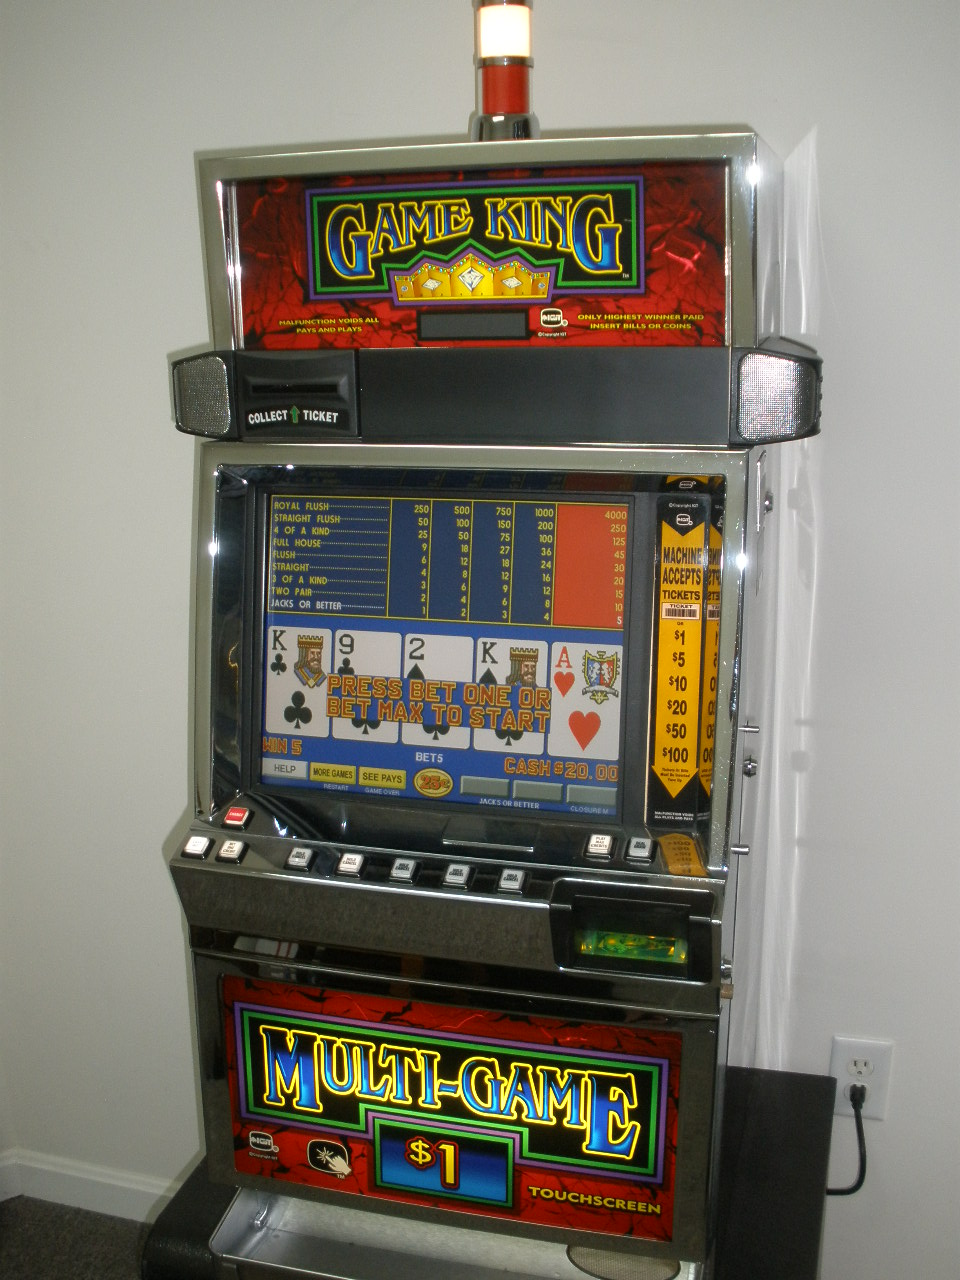 Game king slot machine